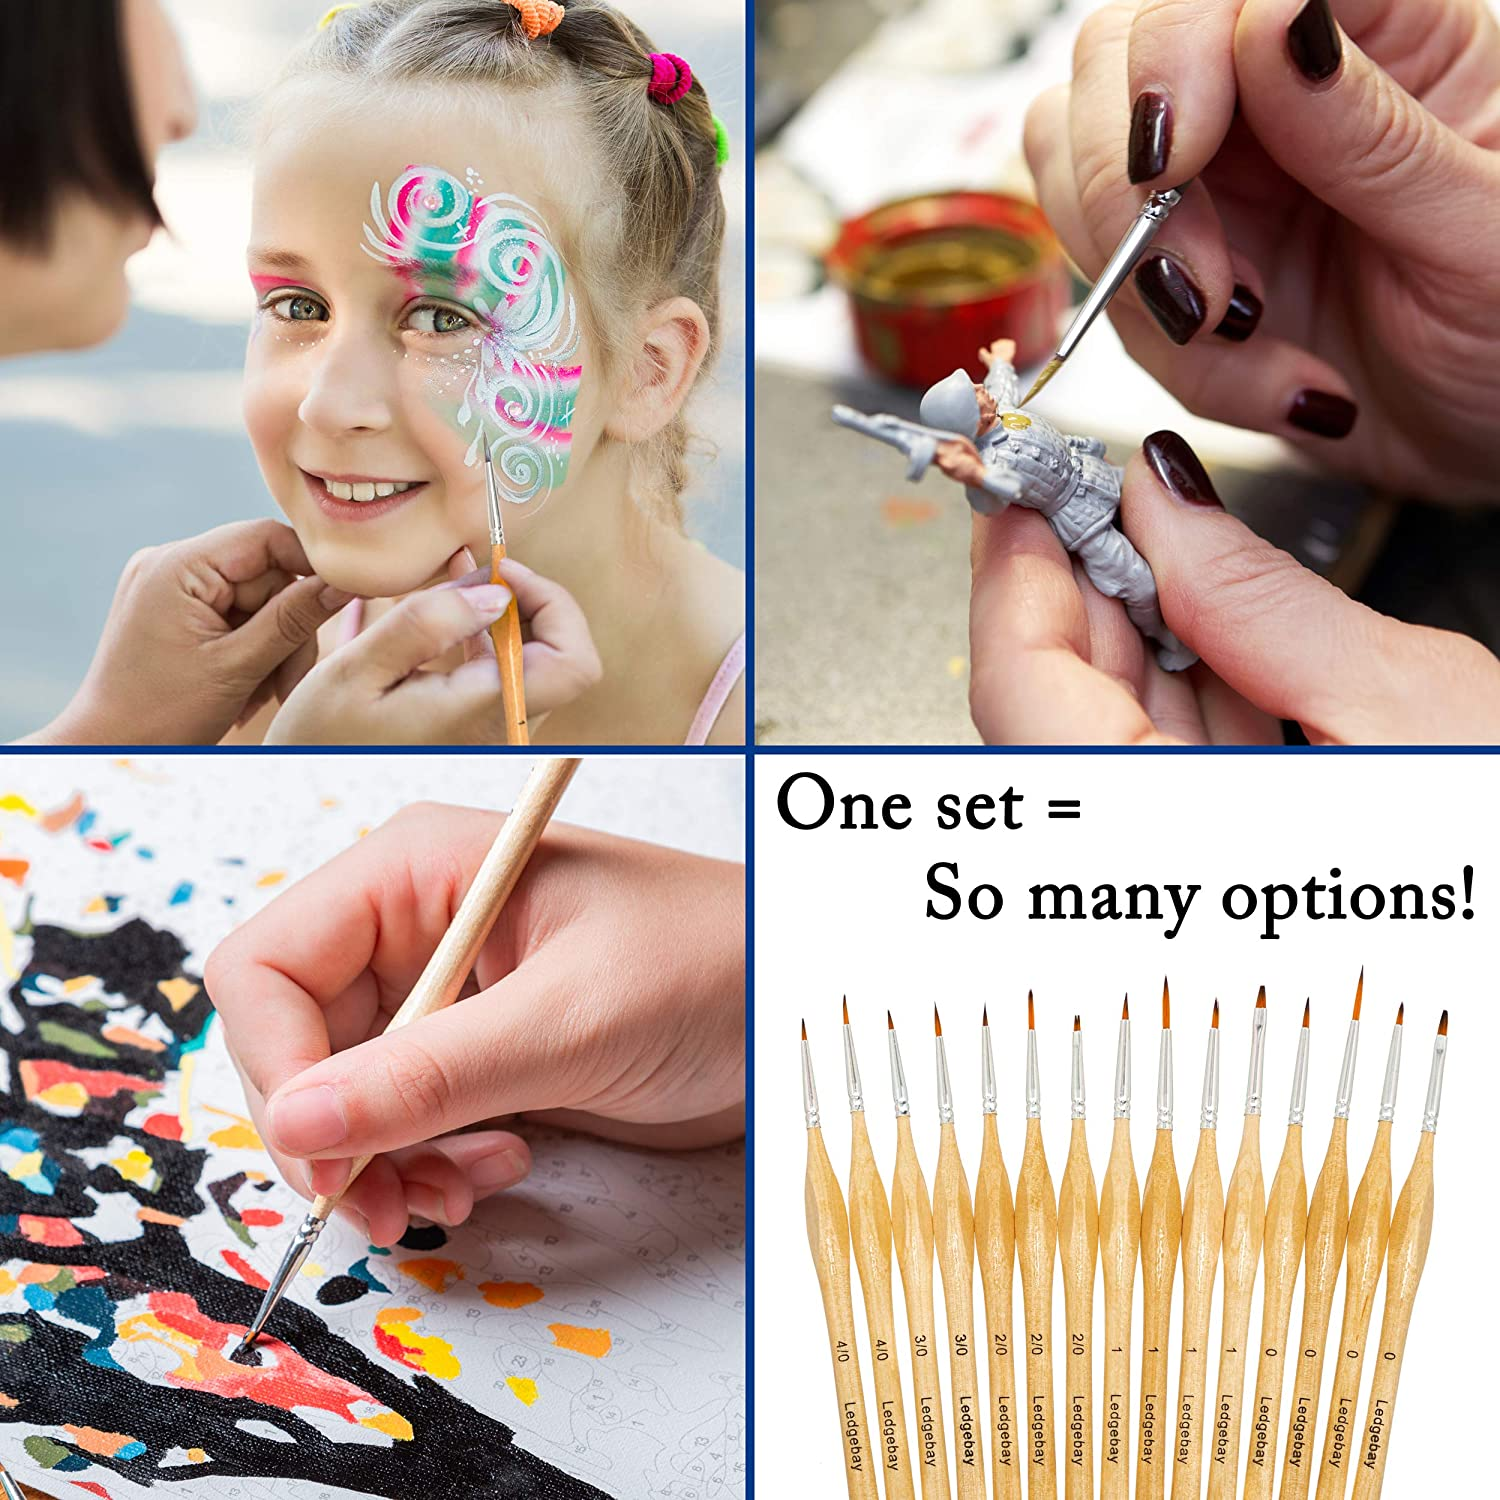 Miniature Paint Brushes by LEDGEBAY or Watercolor 15 Piece Fine Tip Brush Set for Micro Detail Perfectly Balanced and Weighted Wood Handles Taklon Bristles for Model Hand Crafted Oil Acrylic